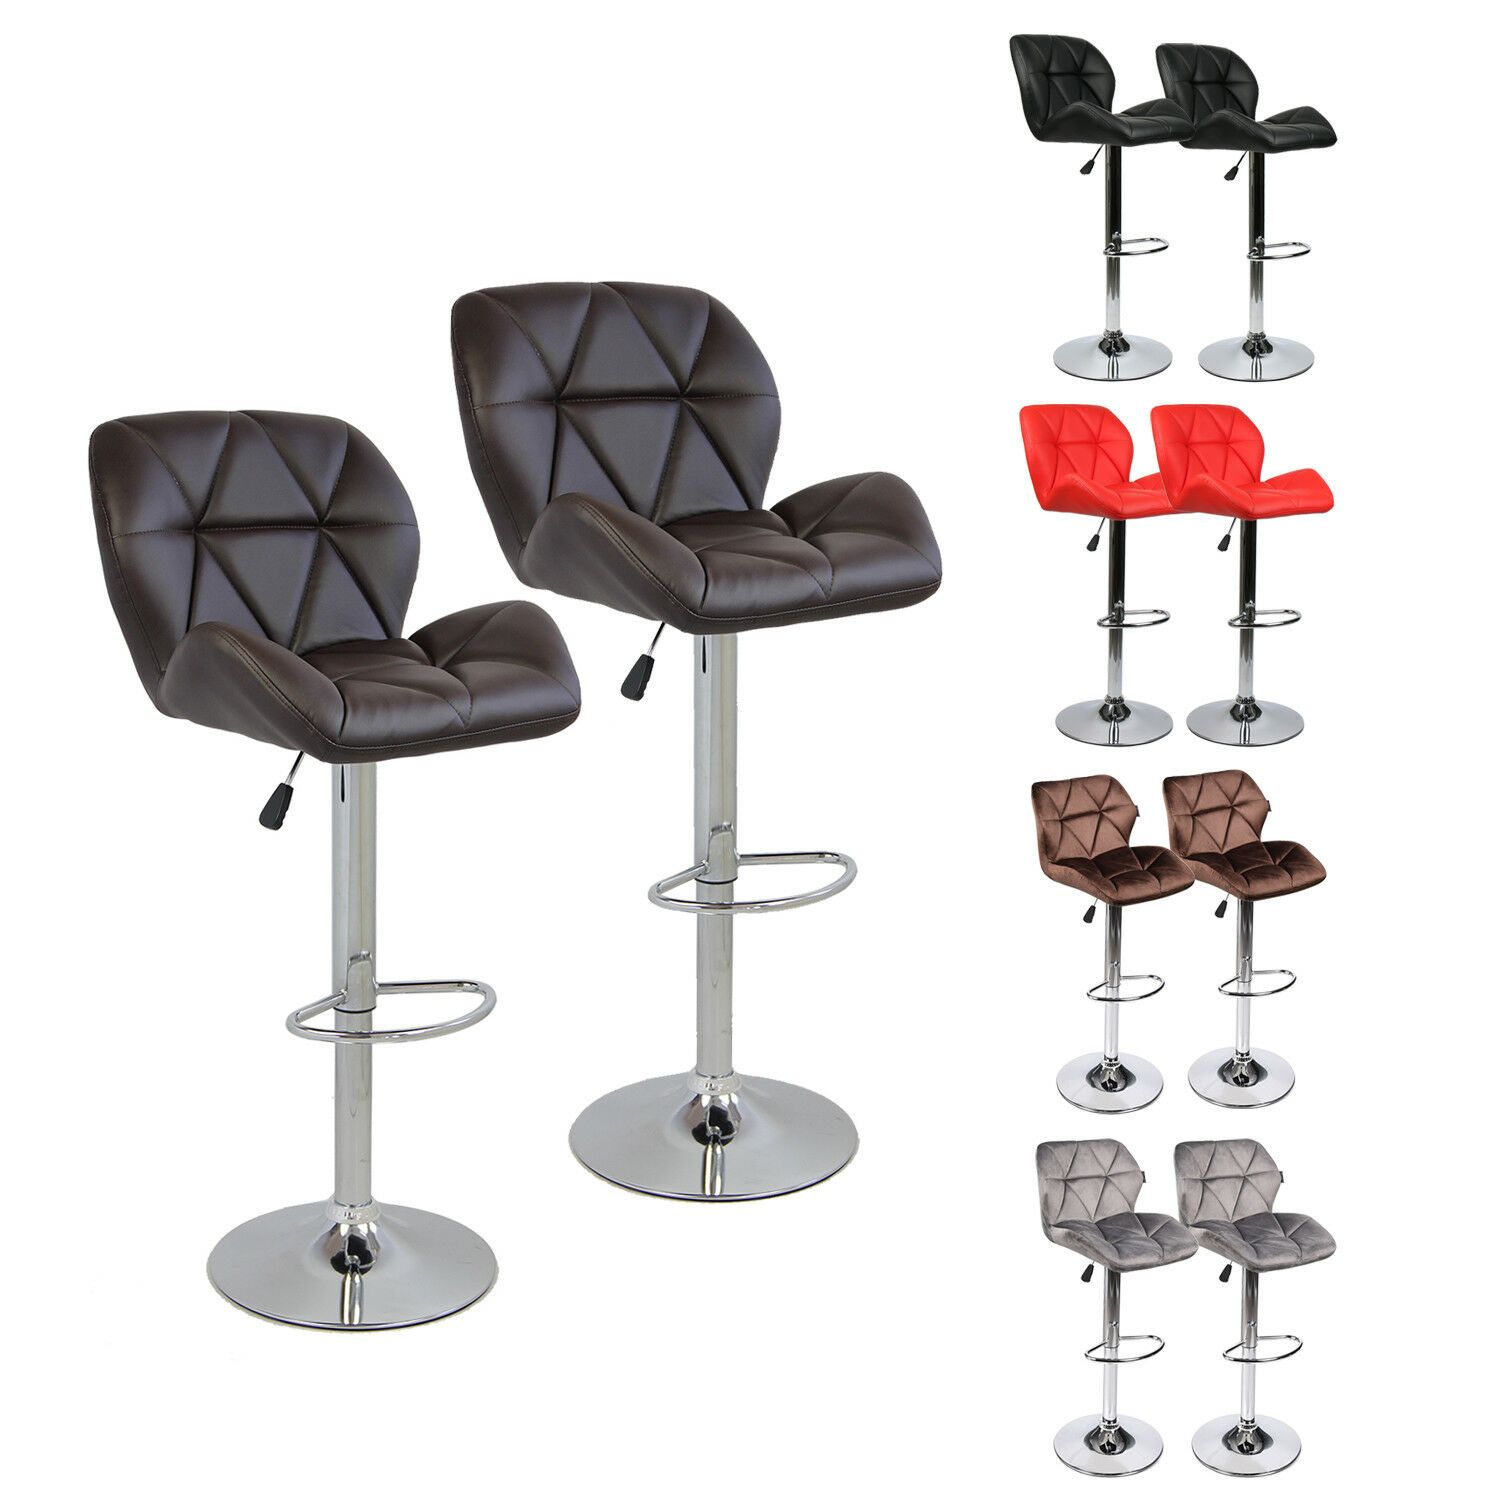 Details About Set Of 2 Bar Stools Adjustable Hydraulic Swivel